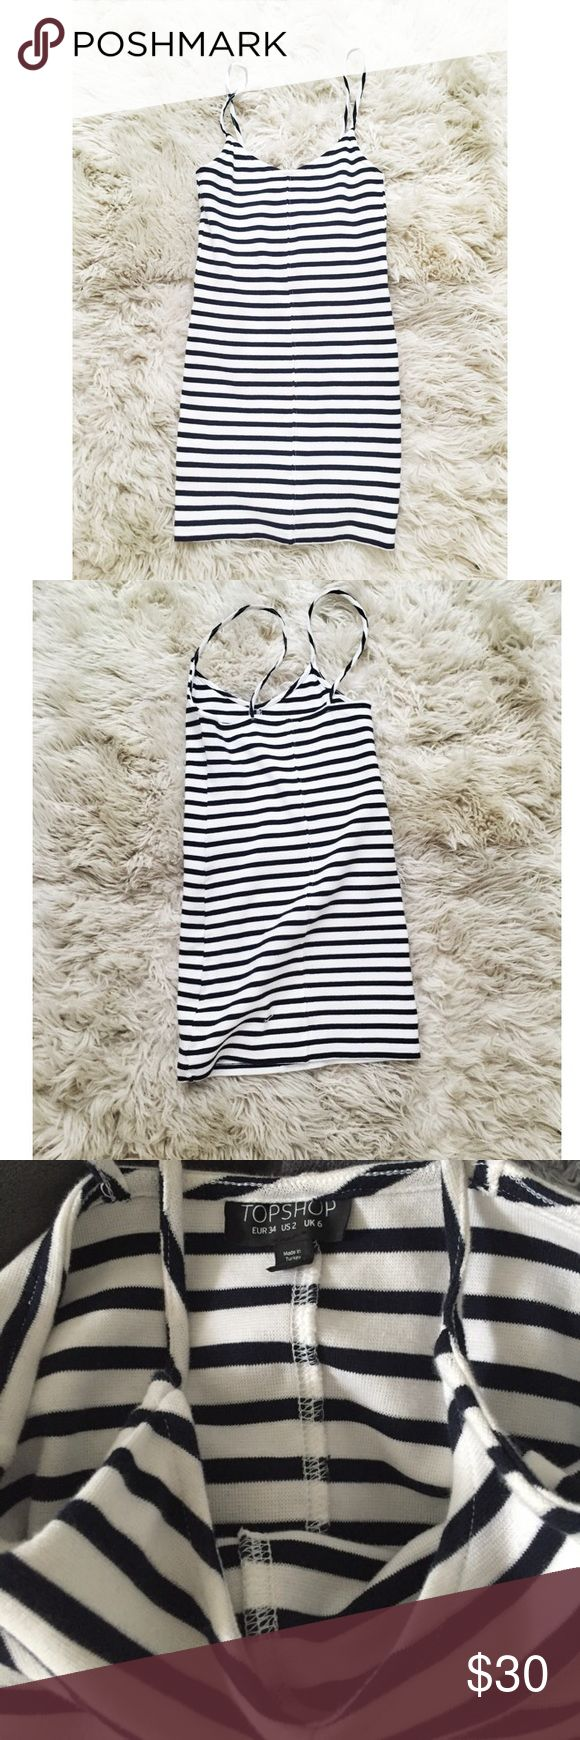 TOPSHOP striped bodycon dress Thick material. Very flattering. Dress has stretch. EUR size 2 which is XS in US. Topshop Dresses Mini